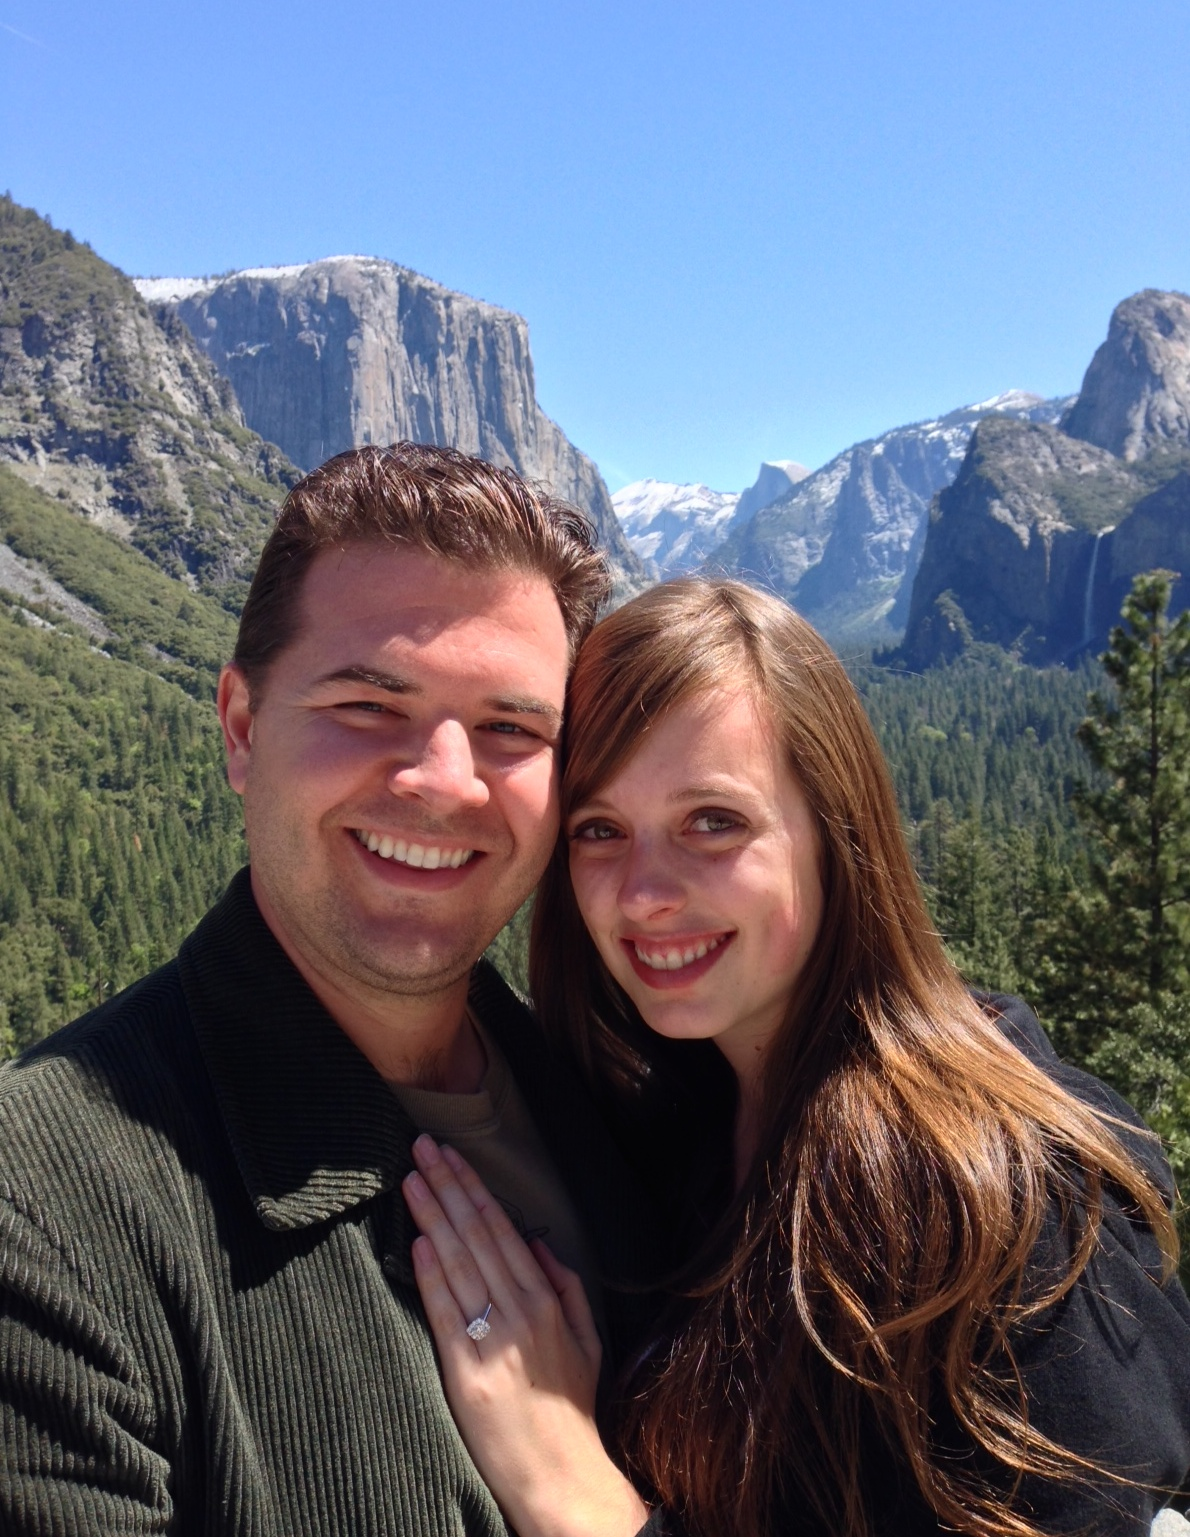 Image 7 of Danielle and Kyle | Yosemite National Park Proposal